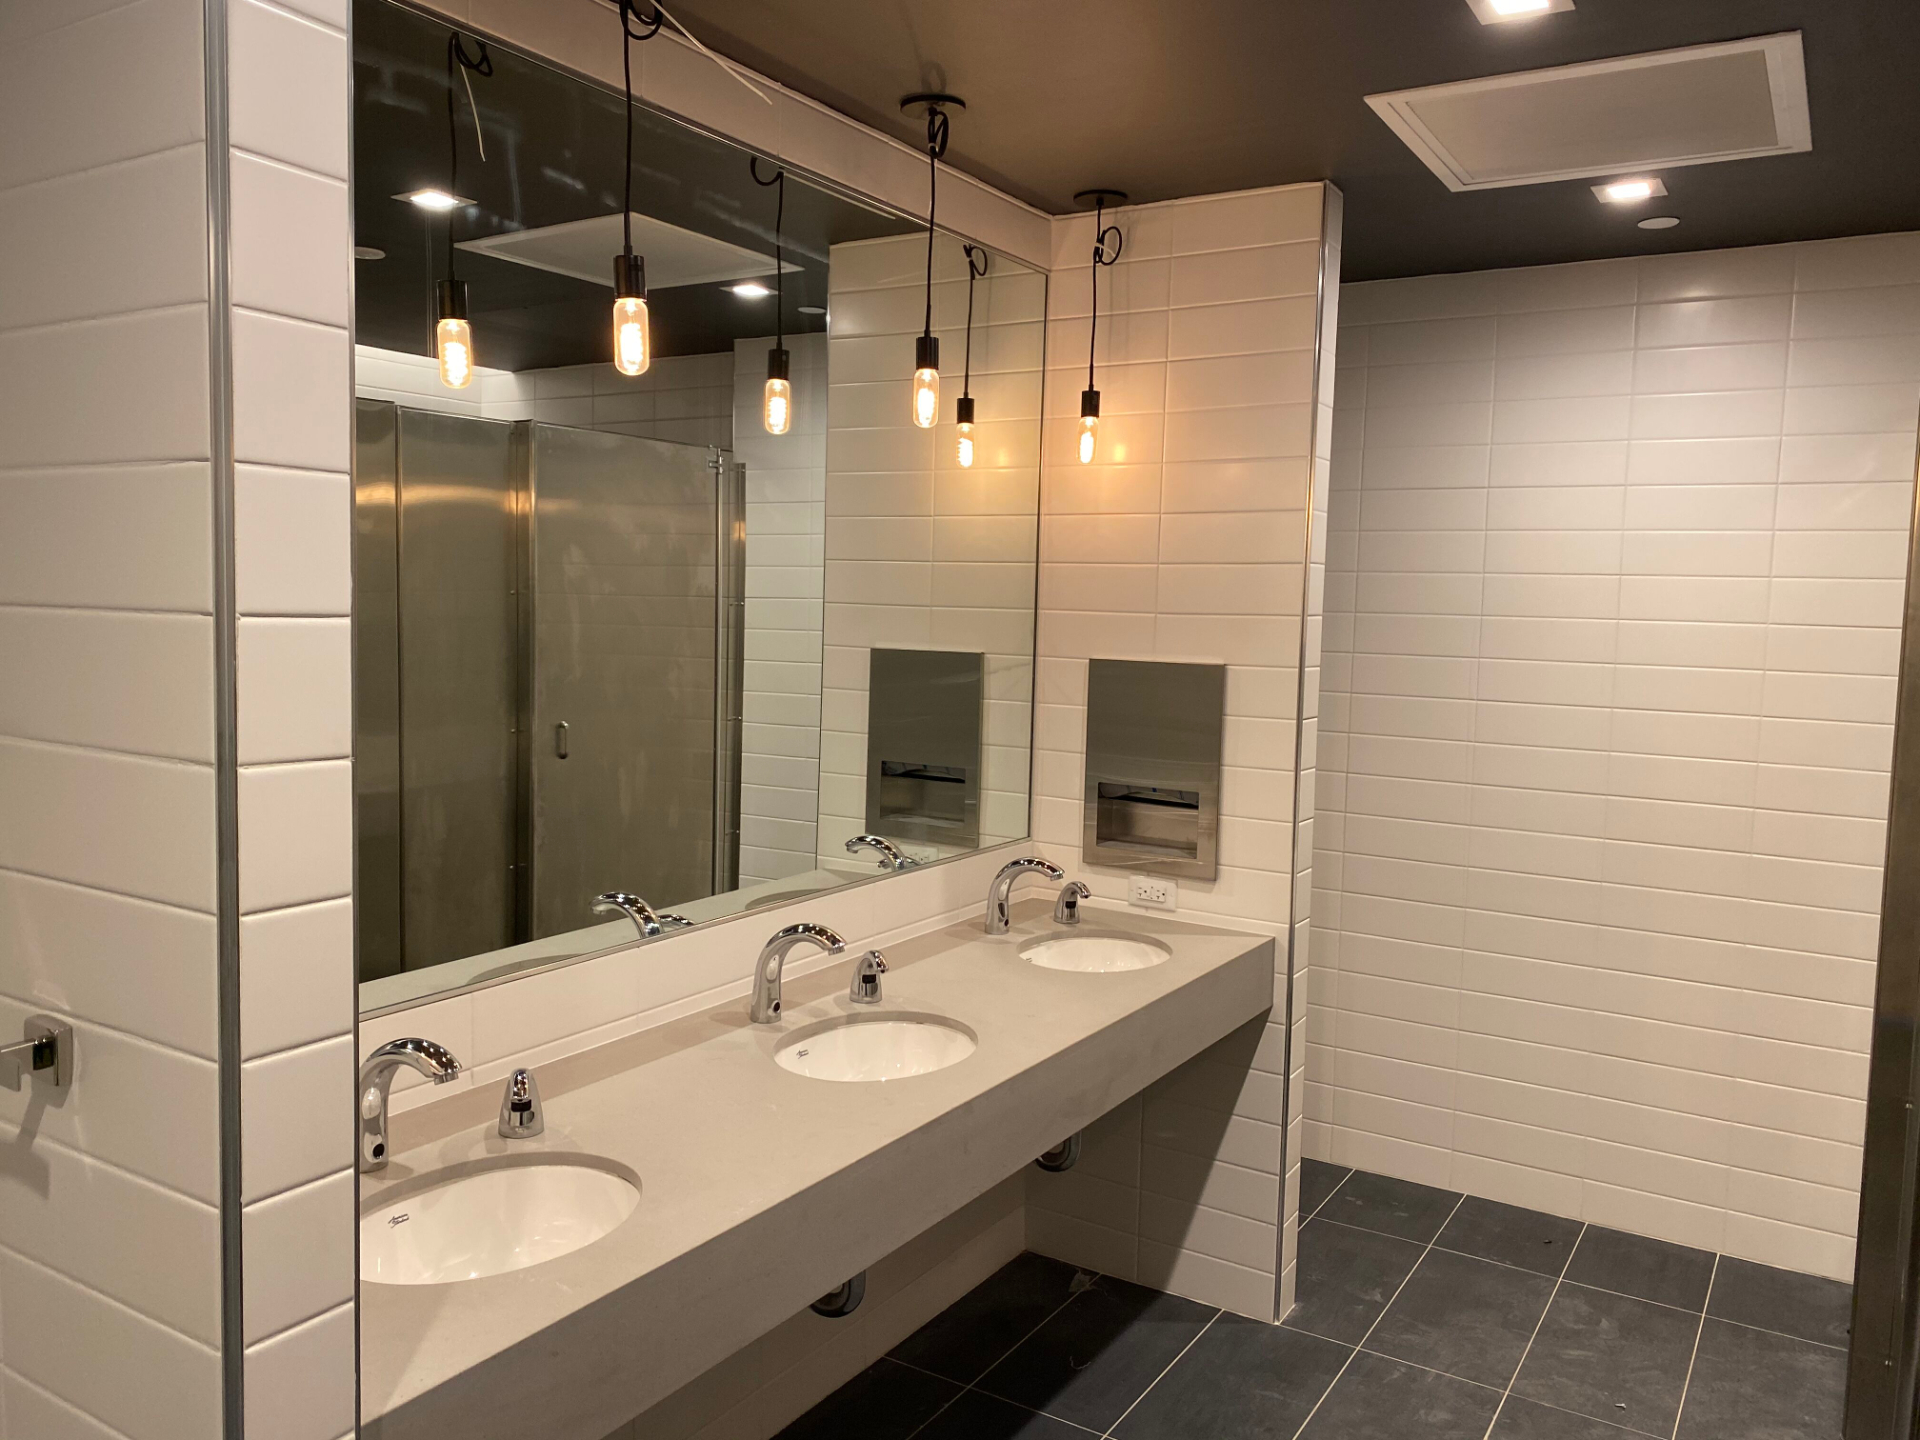 Newly built public bathroom located in financial district of NYC